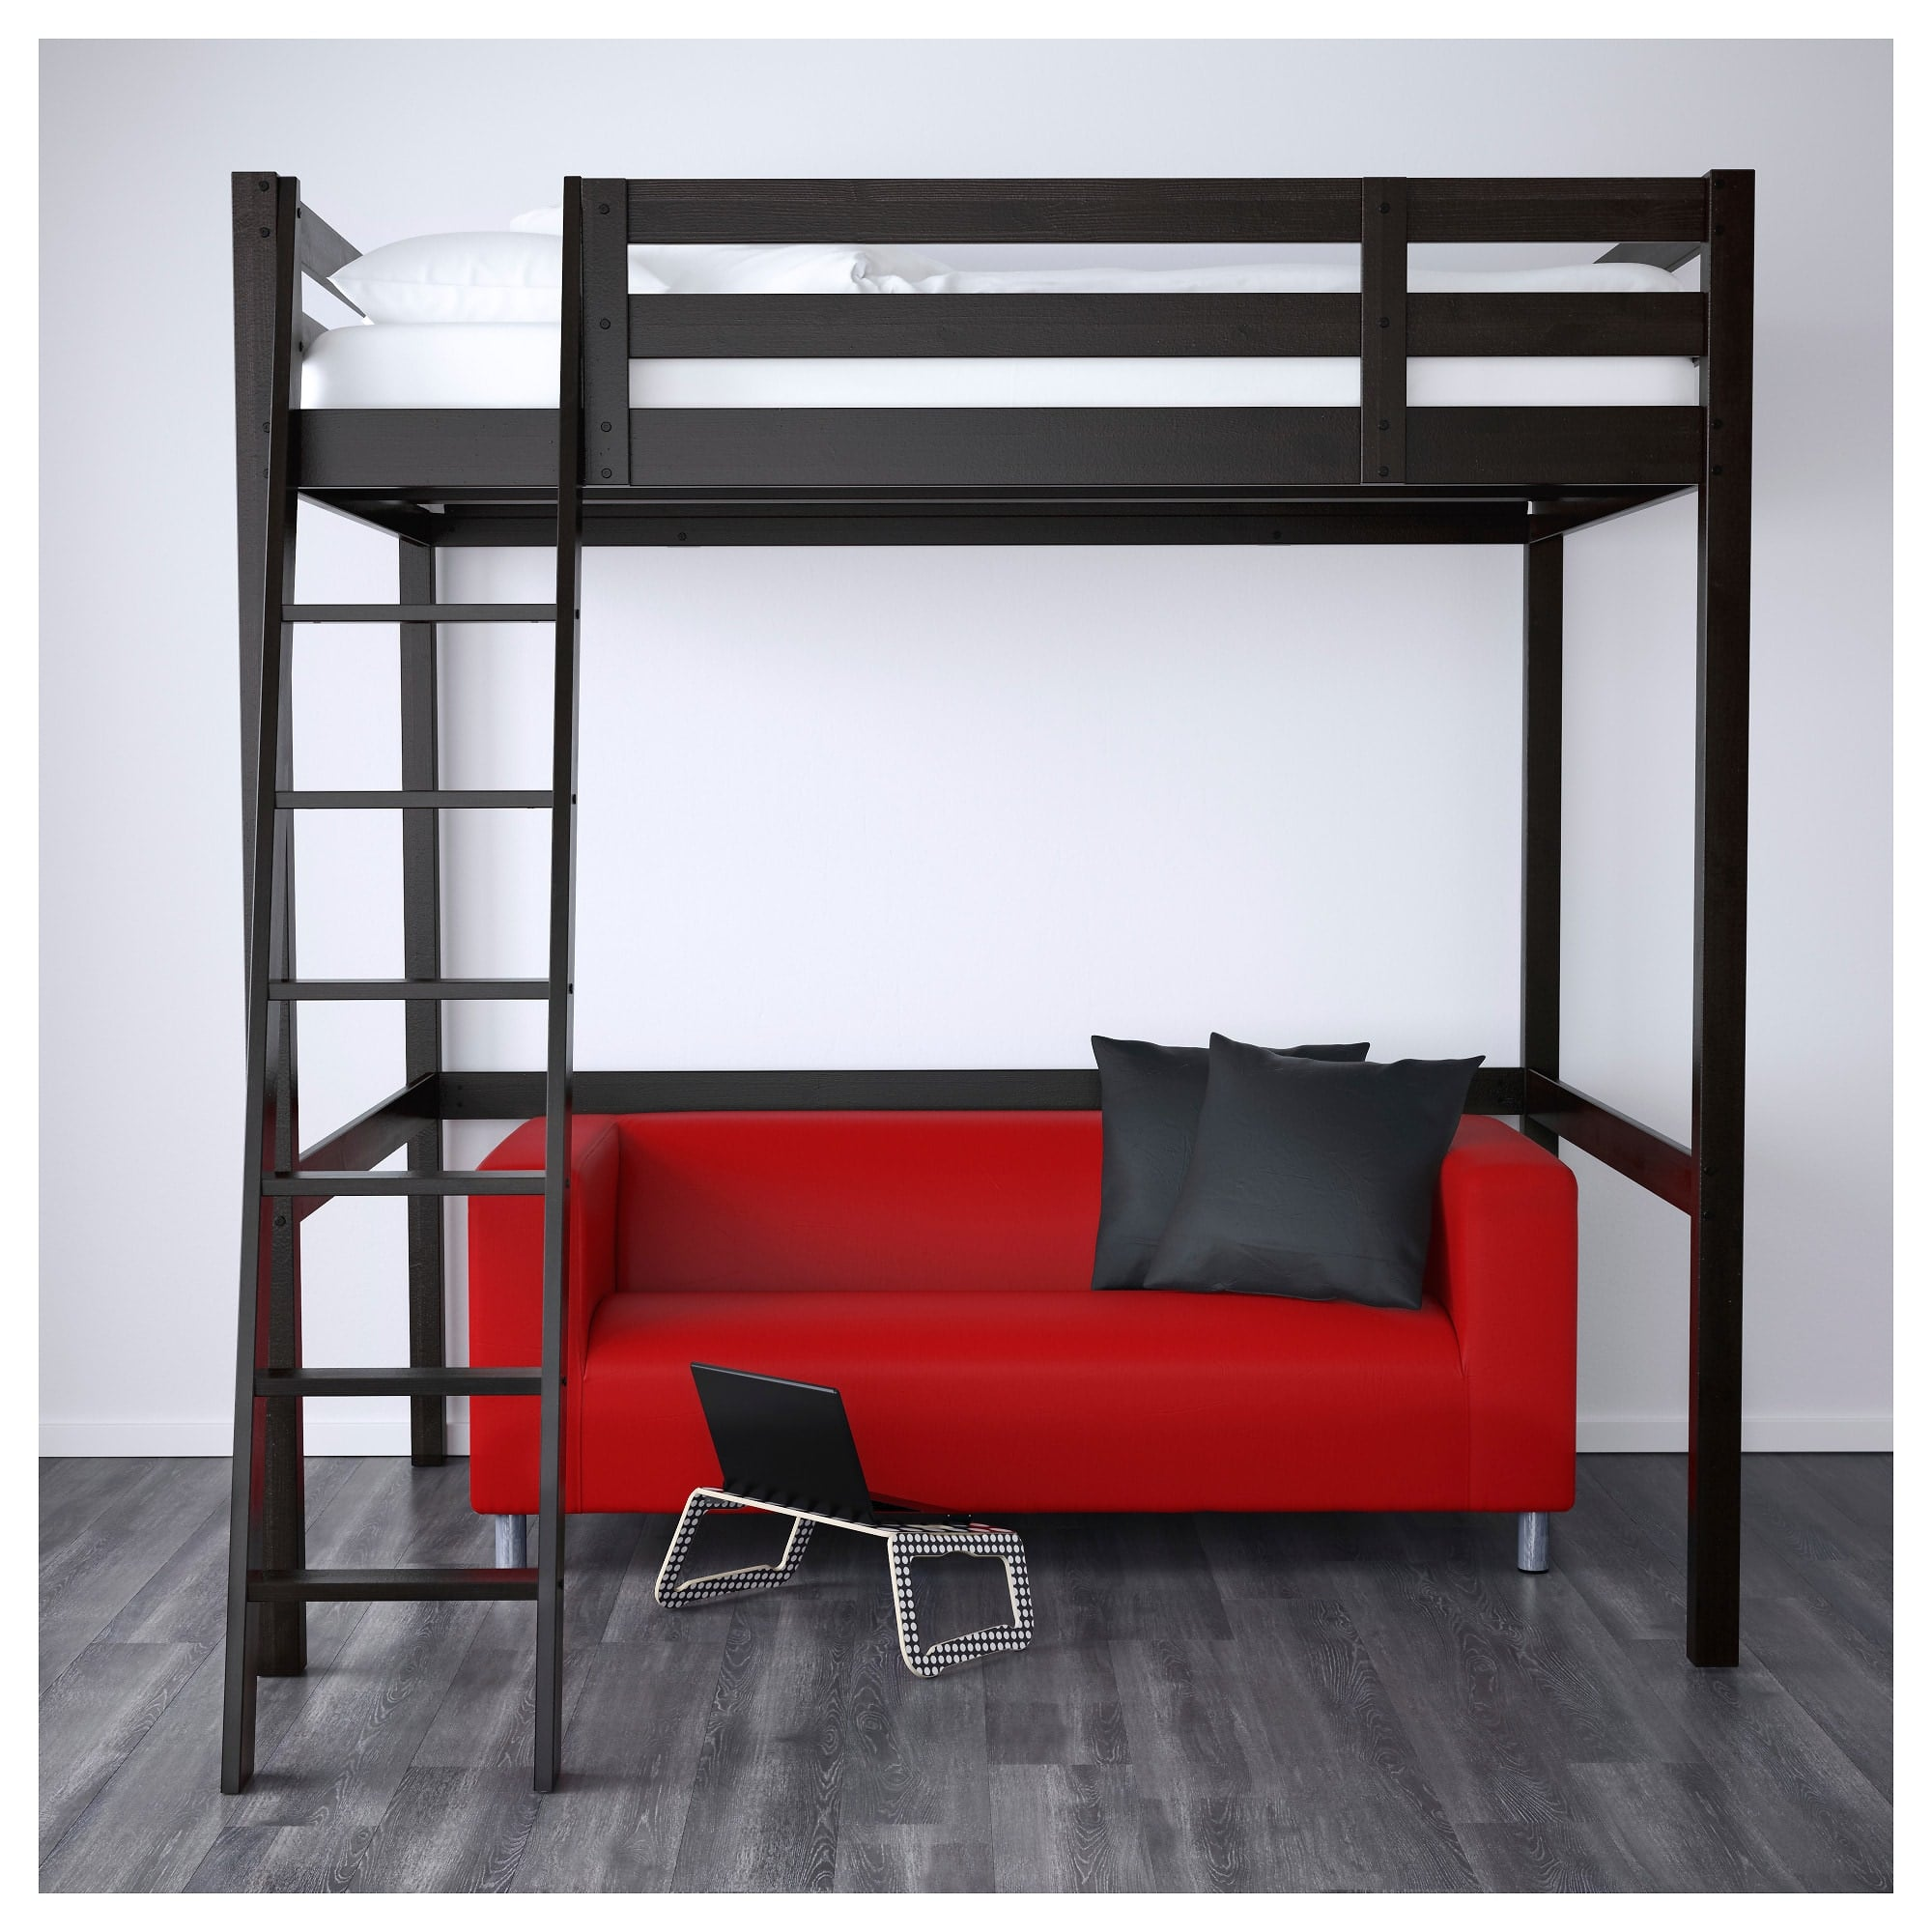 Stora Loft Bed Frame Best Dorm Room Furniture From Ikea Popsugar Home Australia Photo 74